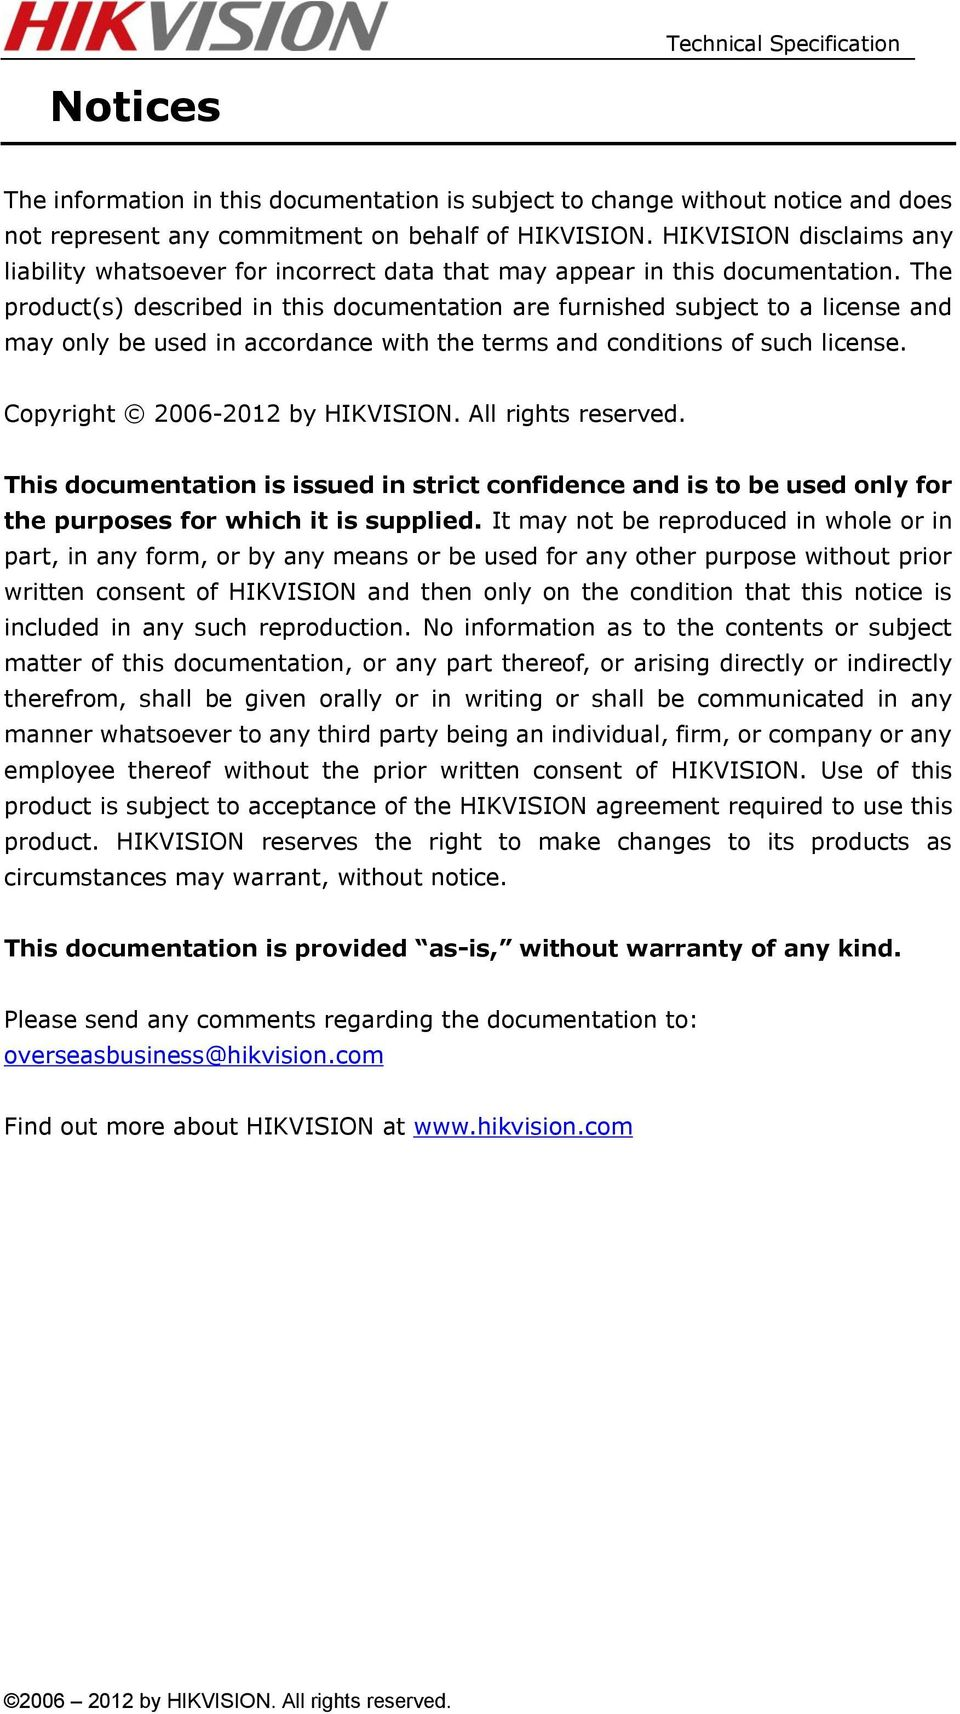 The product(s) described in this documentation are furnished subject to a license and may only be used in accordance with the terms and conditions of such license. Copyright 2006-2012 by HIKVISION.